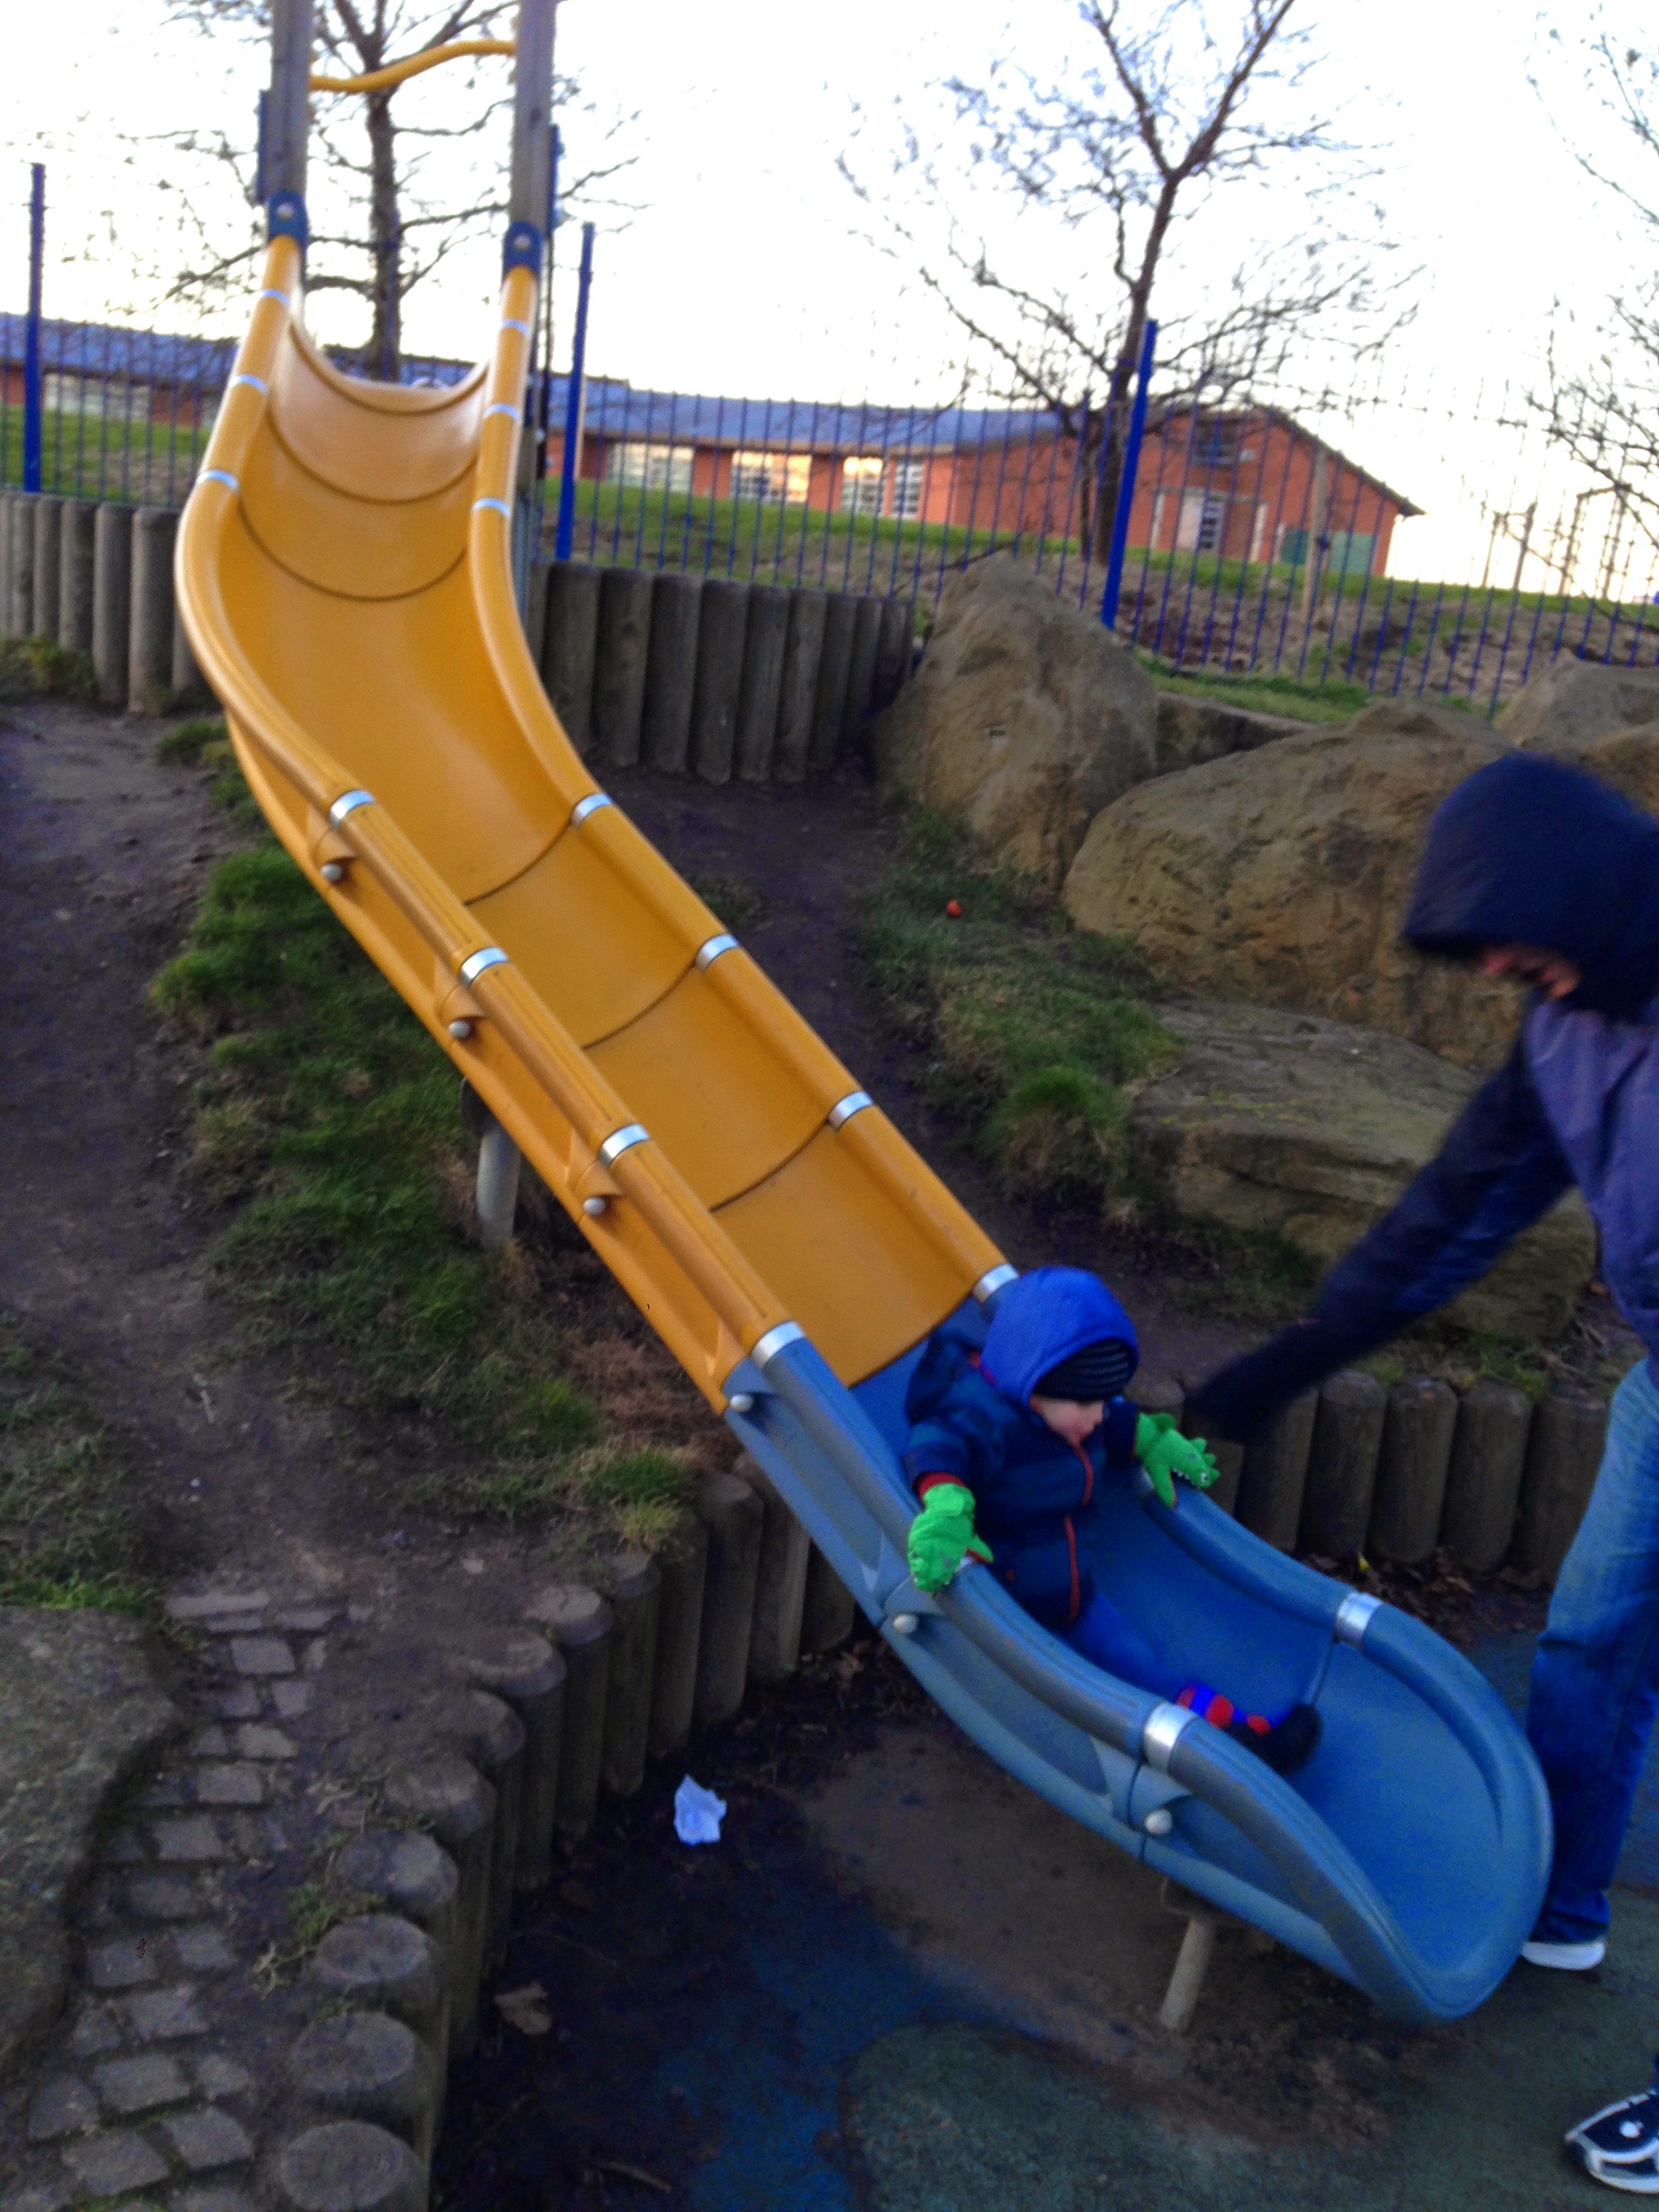 whitley bay park slide february